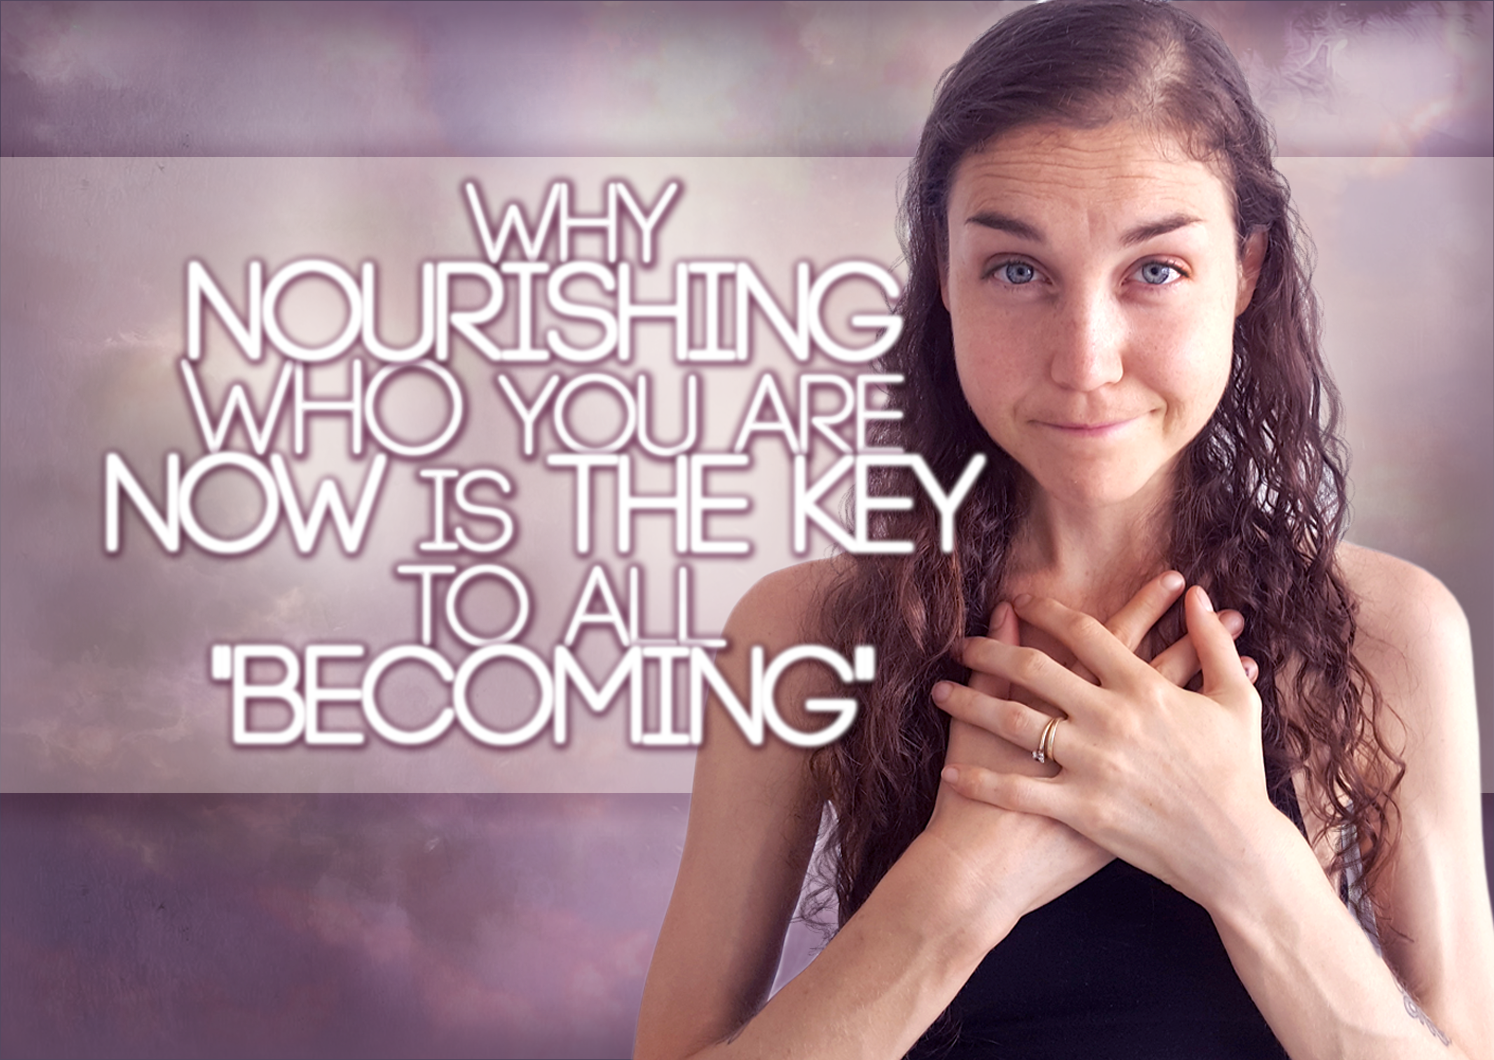 """Why Nourishing Who You Are NOW Is The KEY To All """"Becoming"""""""